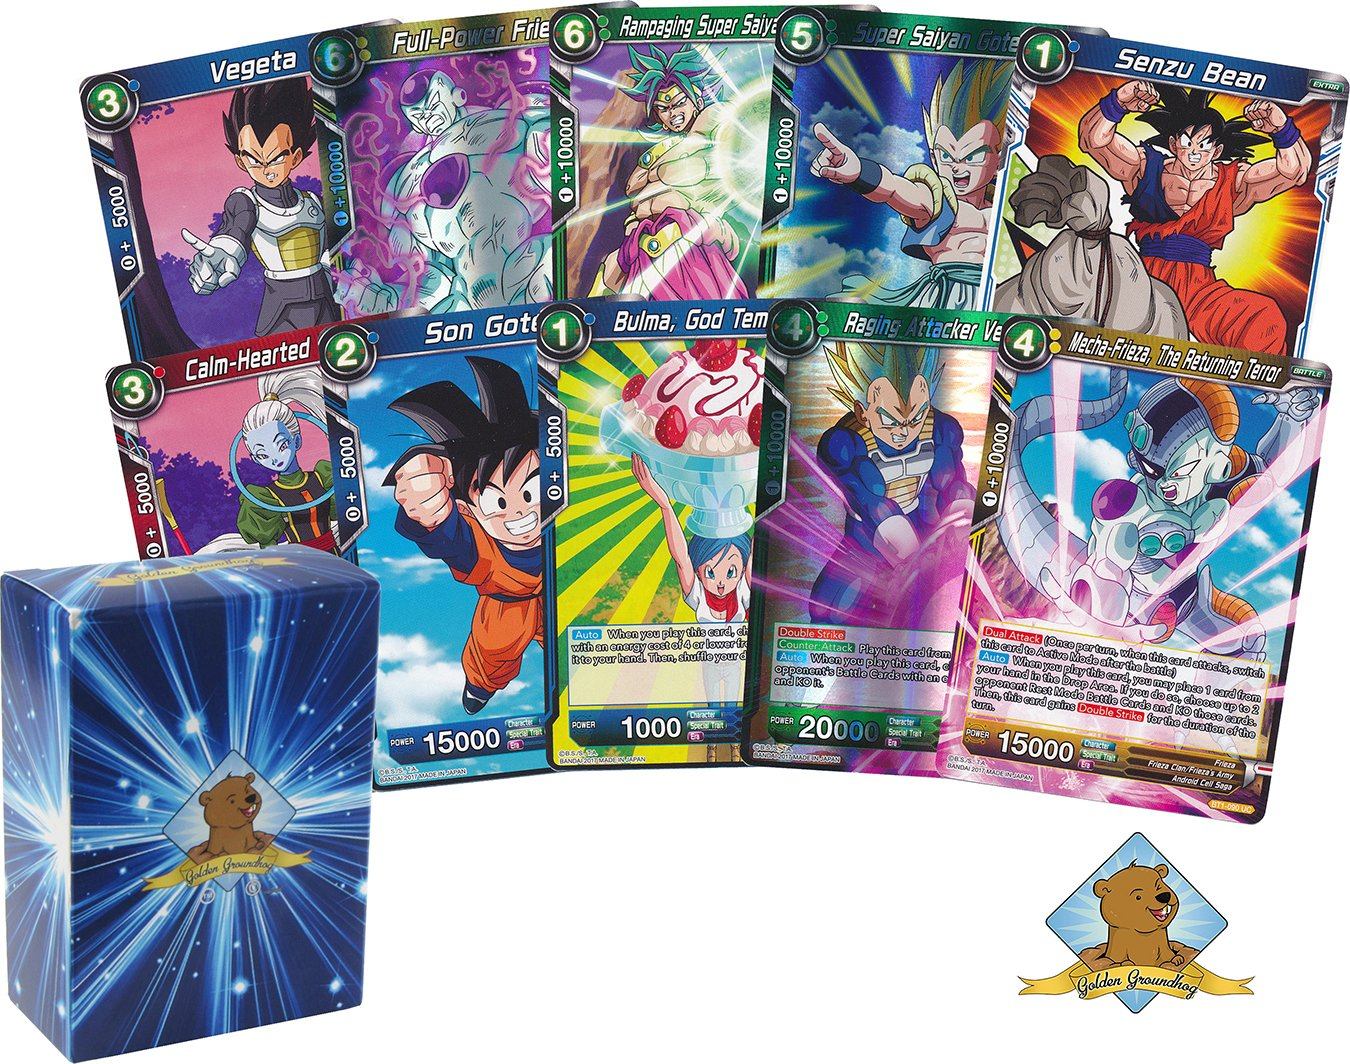 Dragon Ball Super Lot of 50 Cards! Random Rare Card In Each Bundle! Includes Golden Groundhog Deck Box!